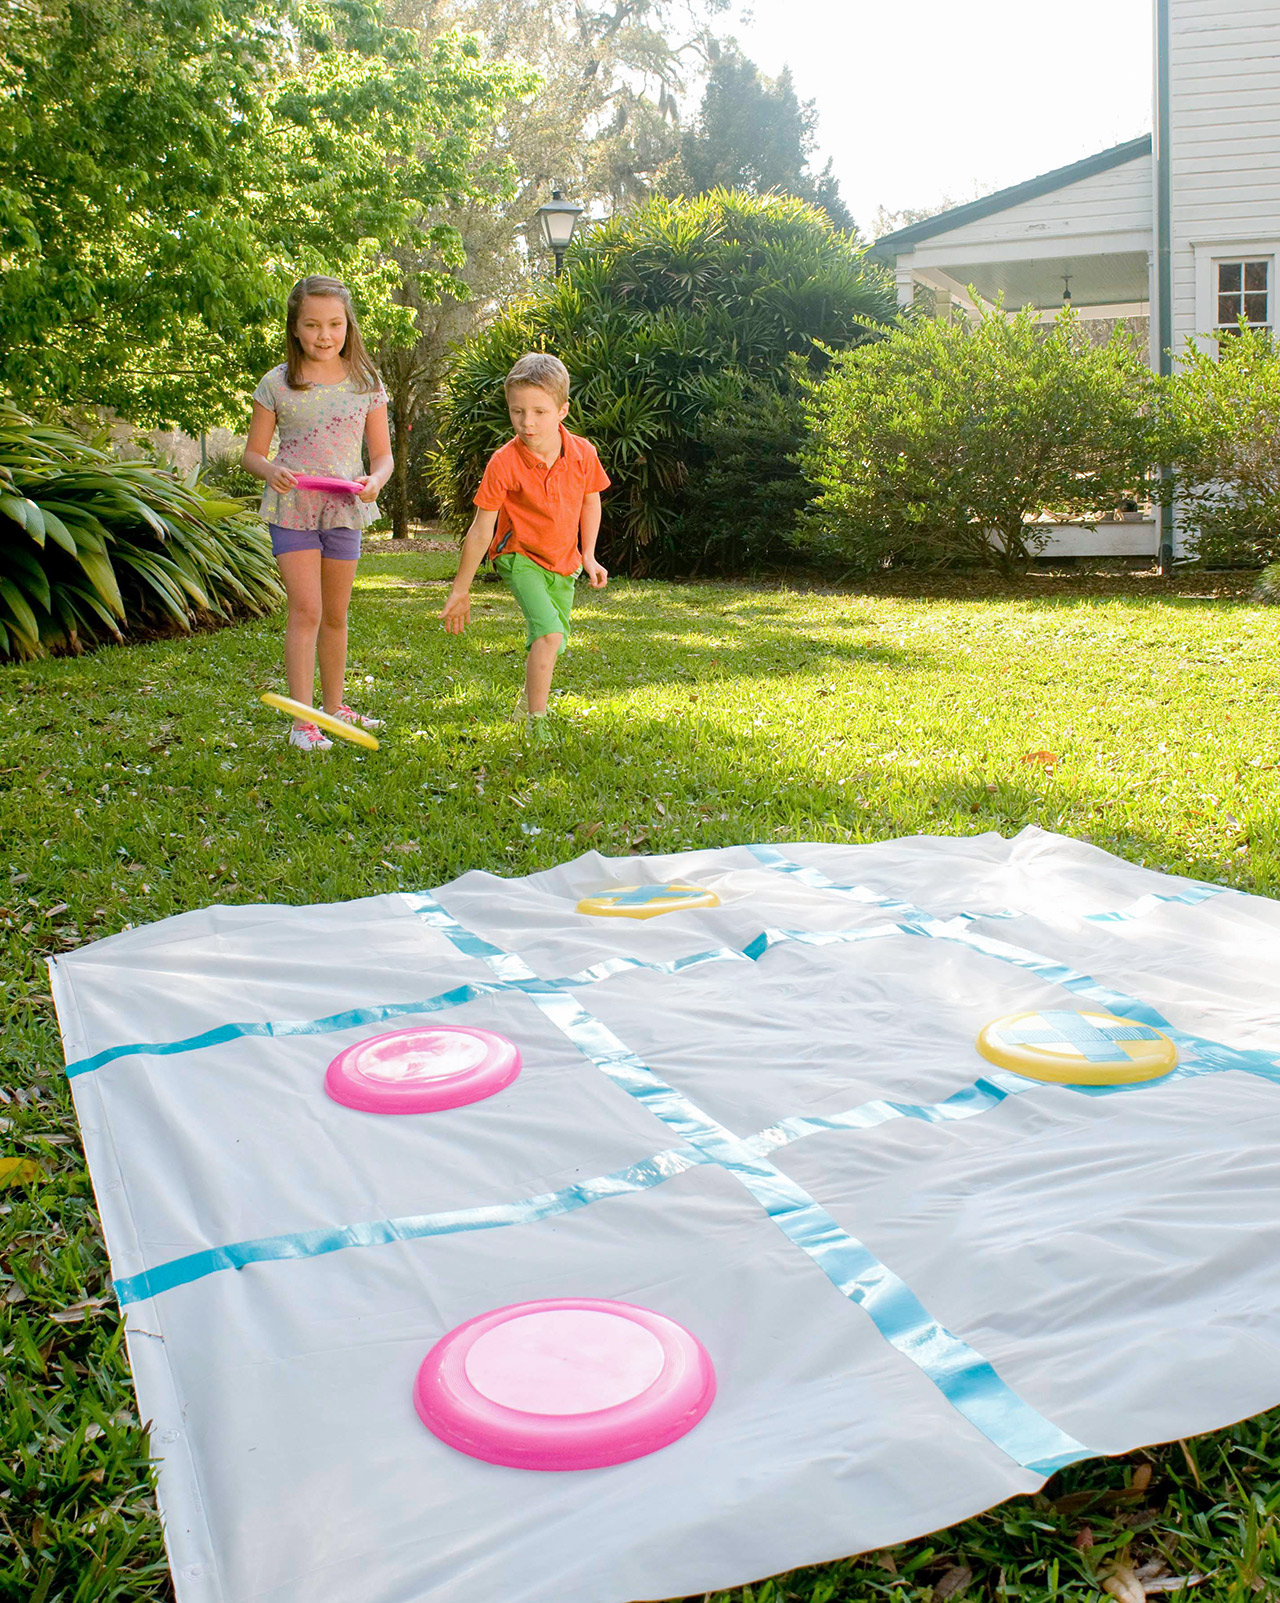 kids playing disc tic-tac-toe outdoors